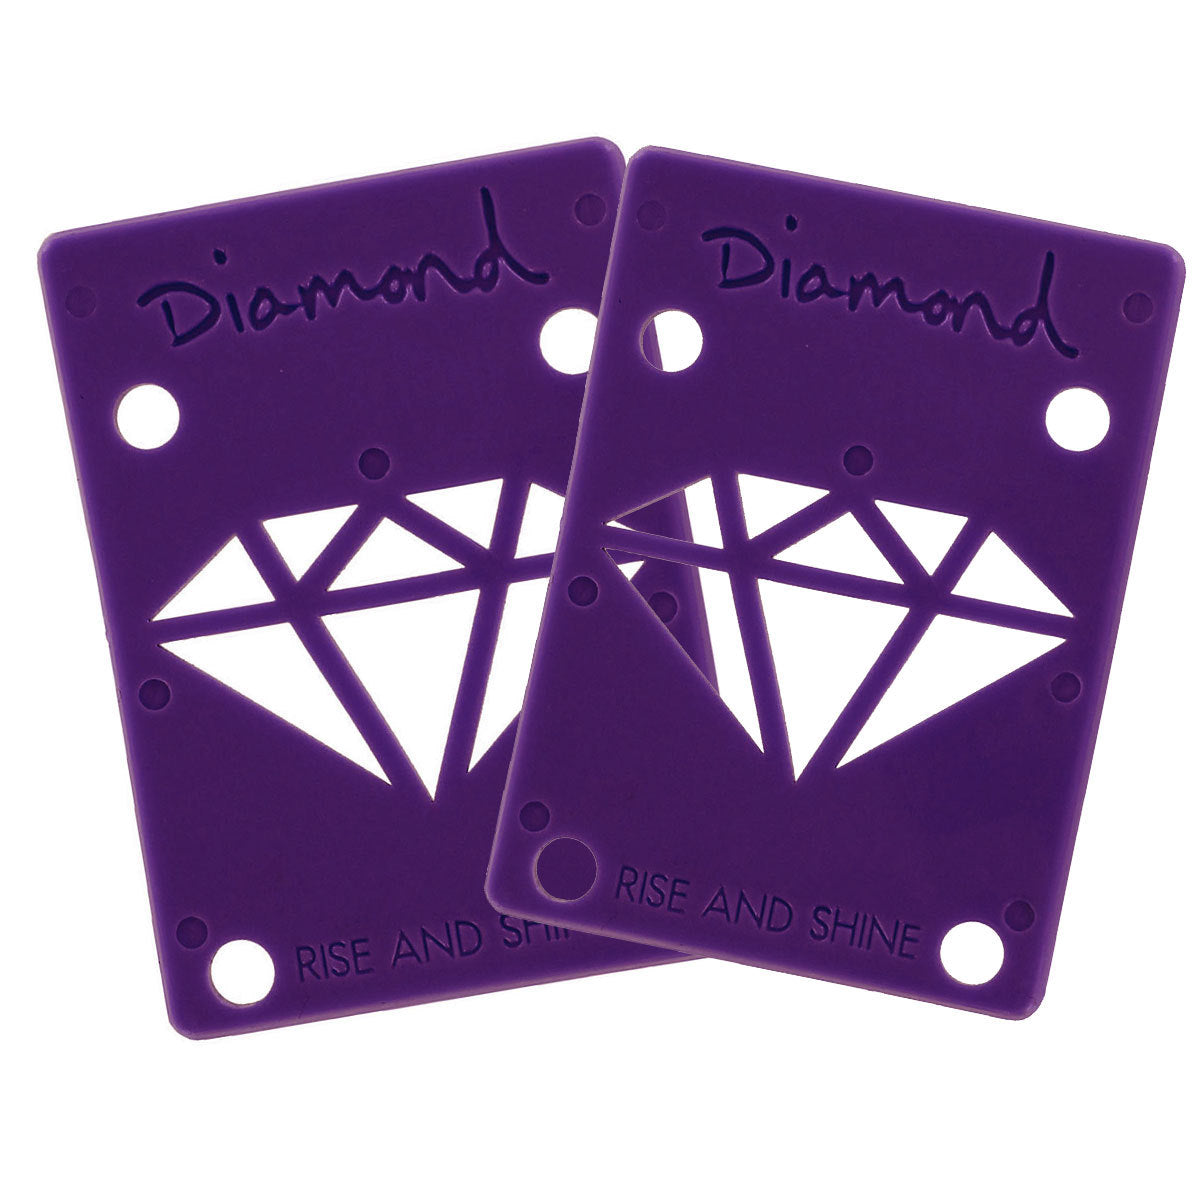 "DIAMOND RISER PADS 1/8"" PURPLE"